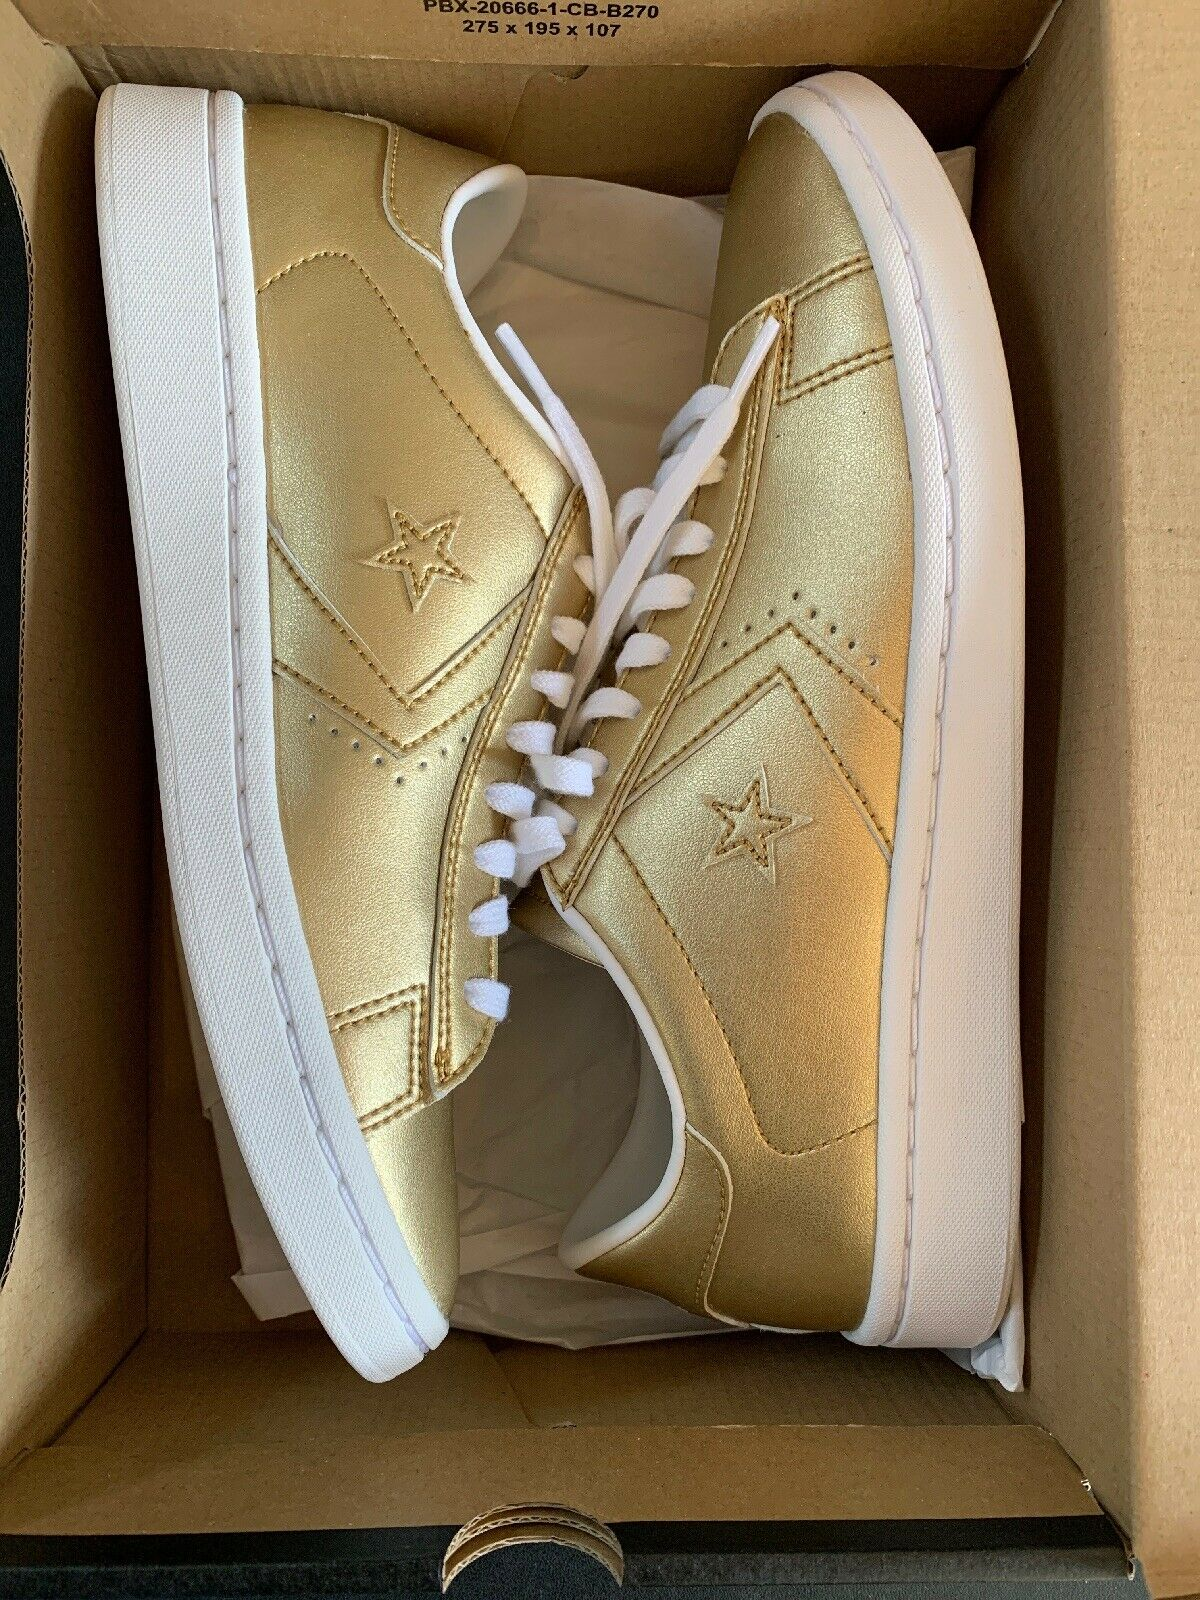 Converse Pro Pro Pro Leather LP Metallic gold Sneaker Woman shoes New NWT Size 7.5 5c4d09